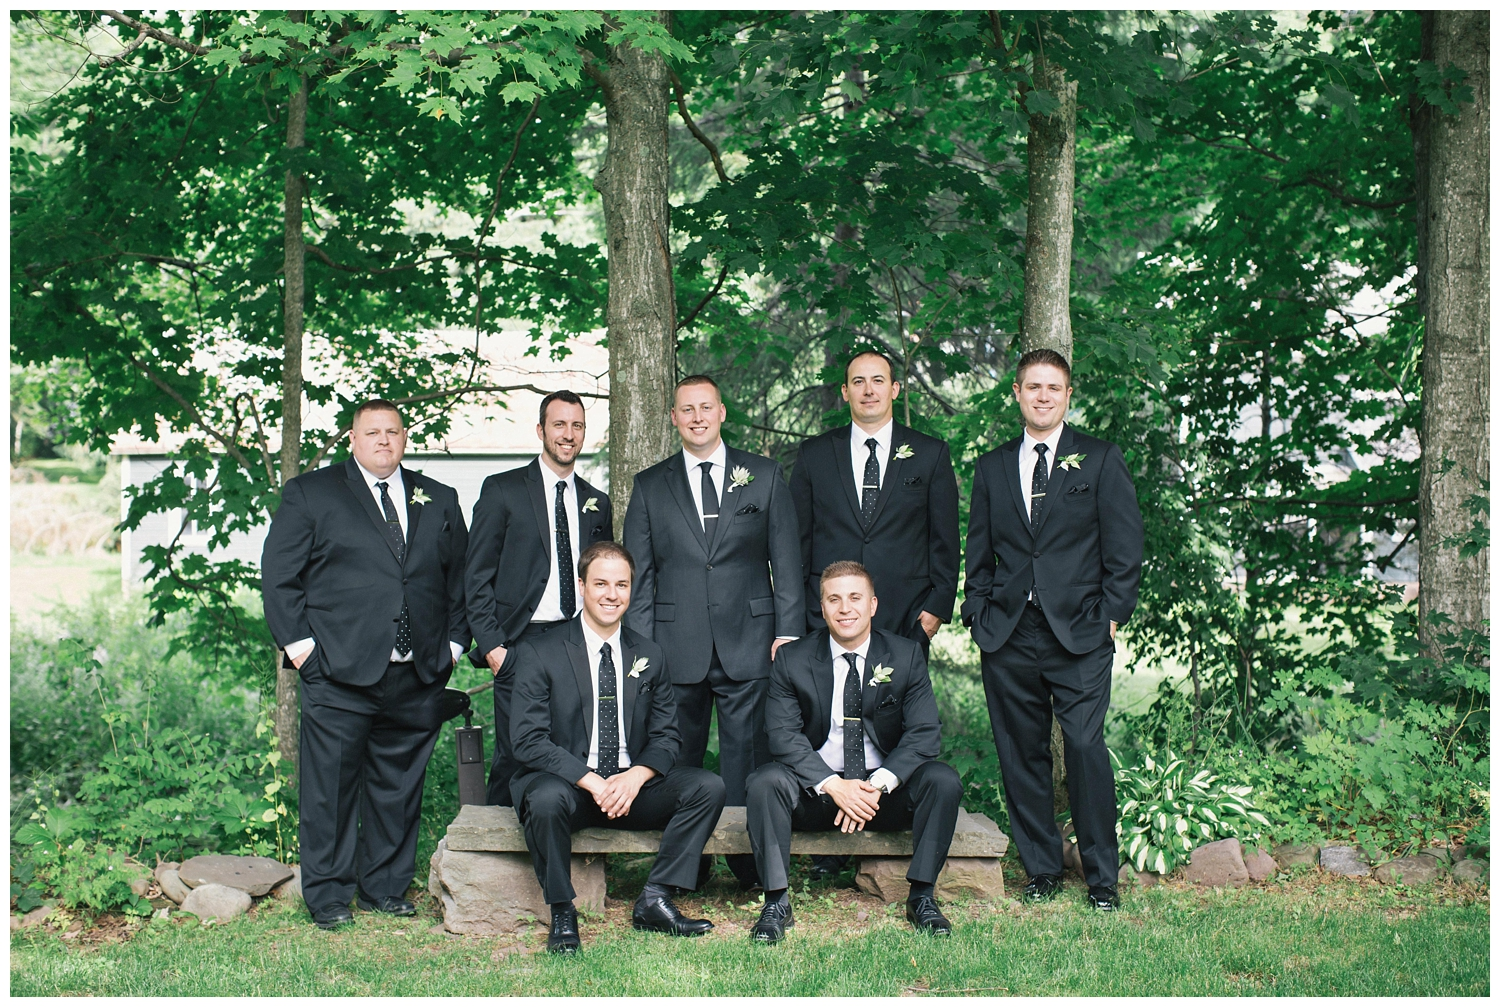 The Roxbury Barn Wedding Venue | Groom and Groomsmen | Barn Wedding